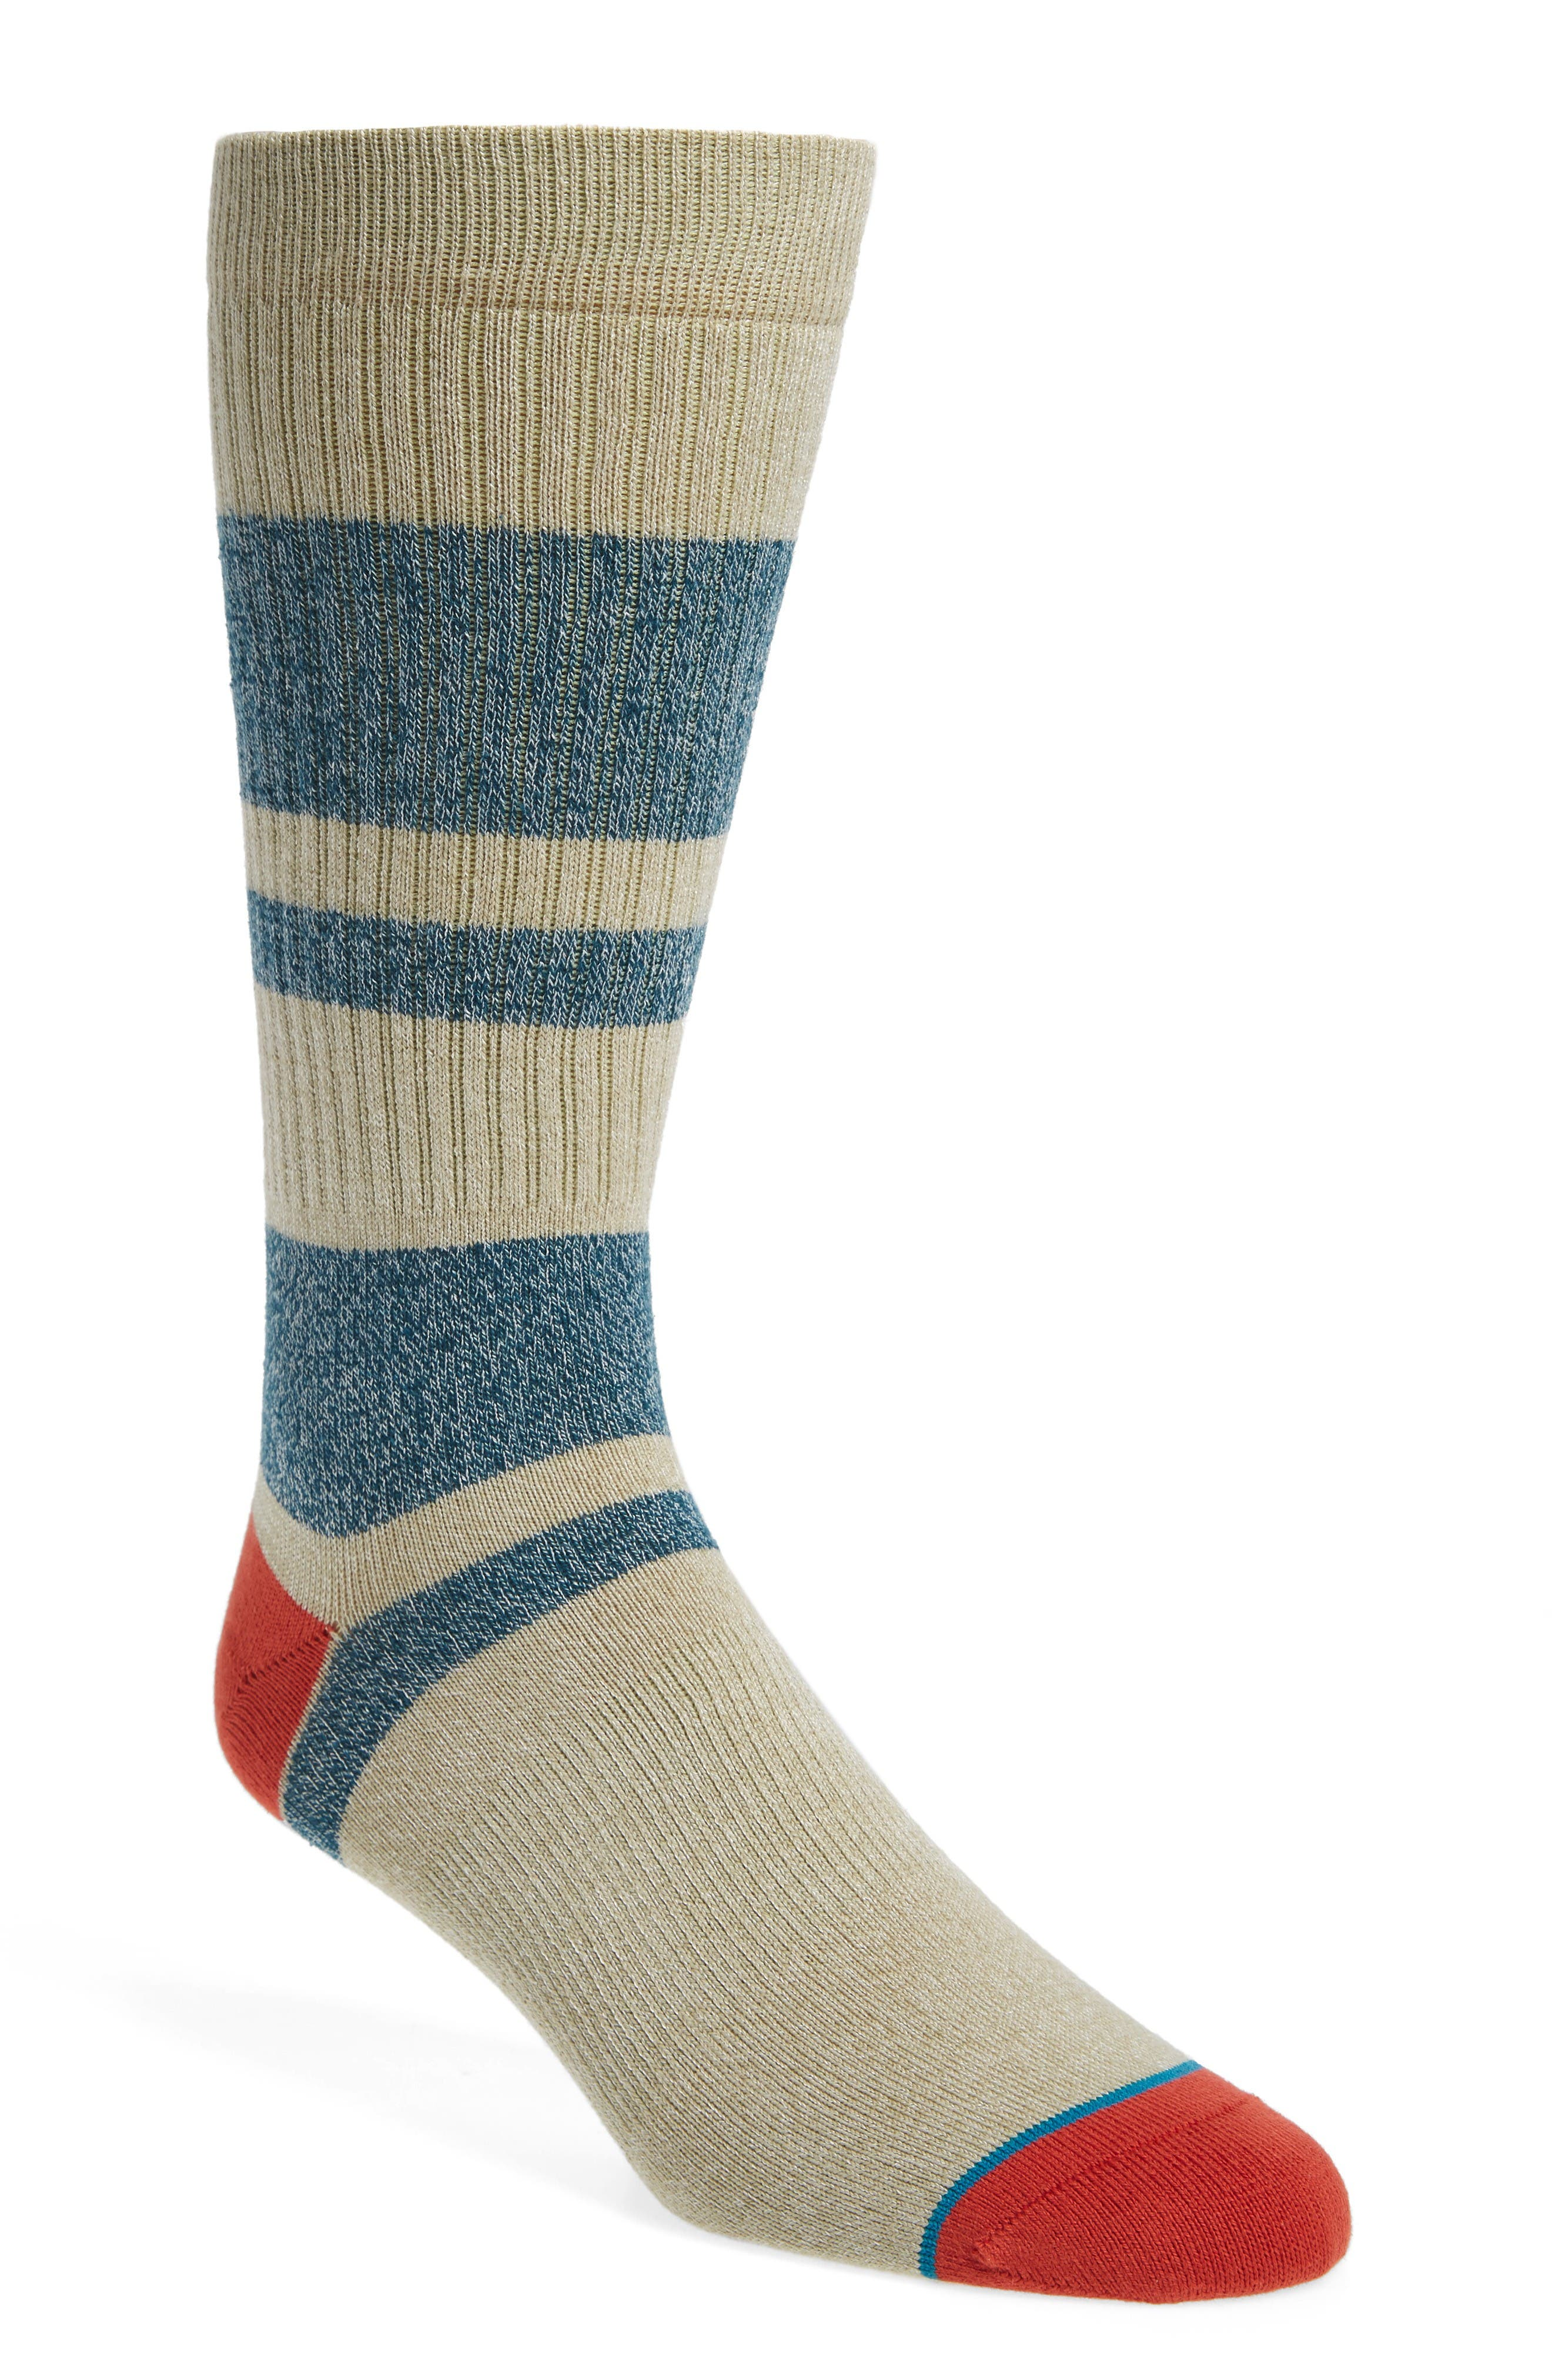 First Point Socks,                             Main thumbnail 1, color,                             White/ Blue